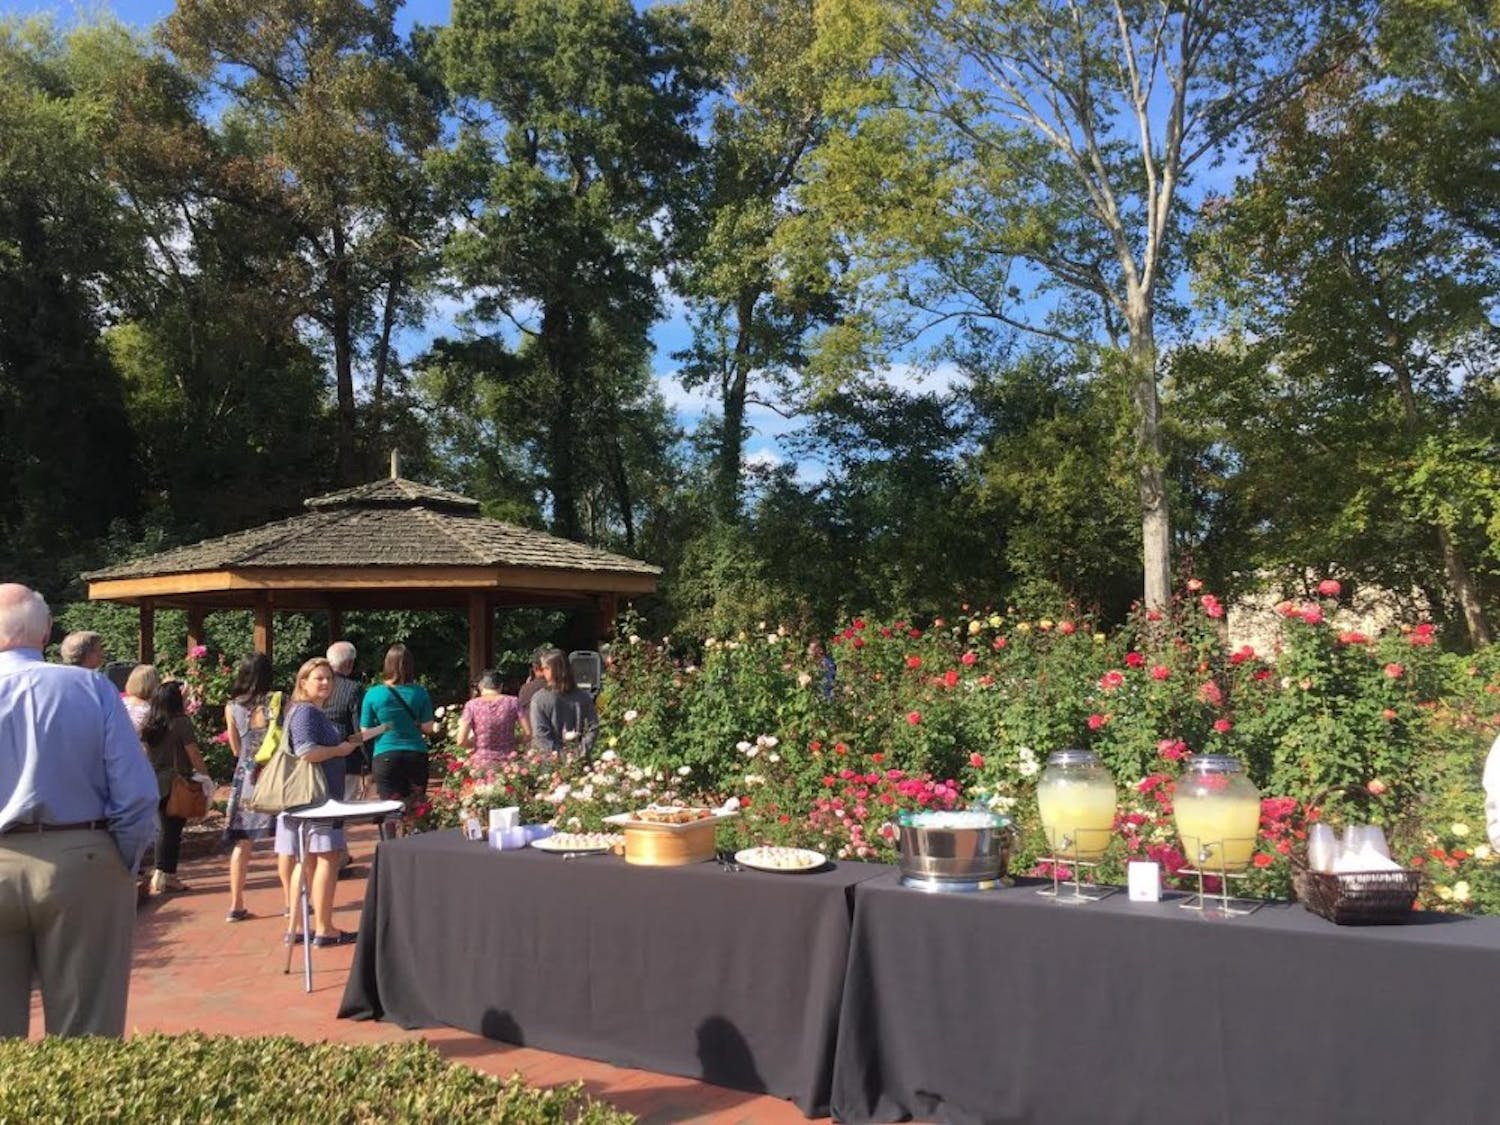 Strowd Roses Inc. board members, grant recipients and members of charitable organizations gather at the Gene Strowd Community Rose Garden in Chapel Hill.